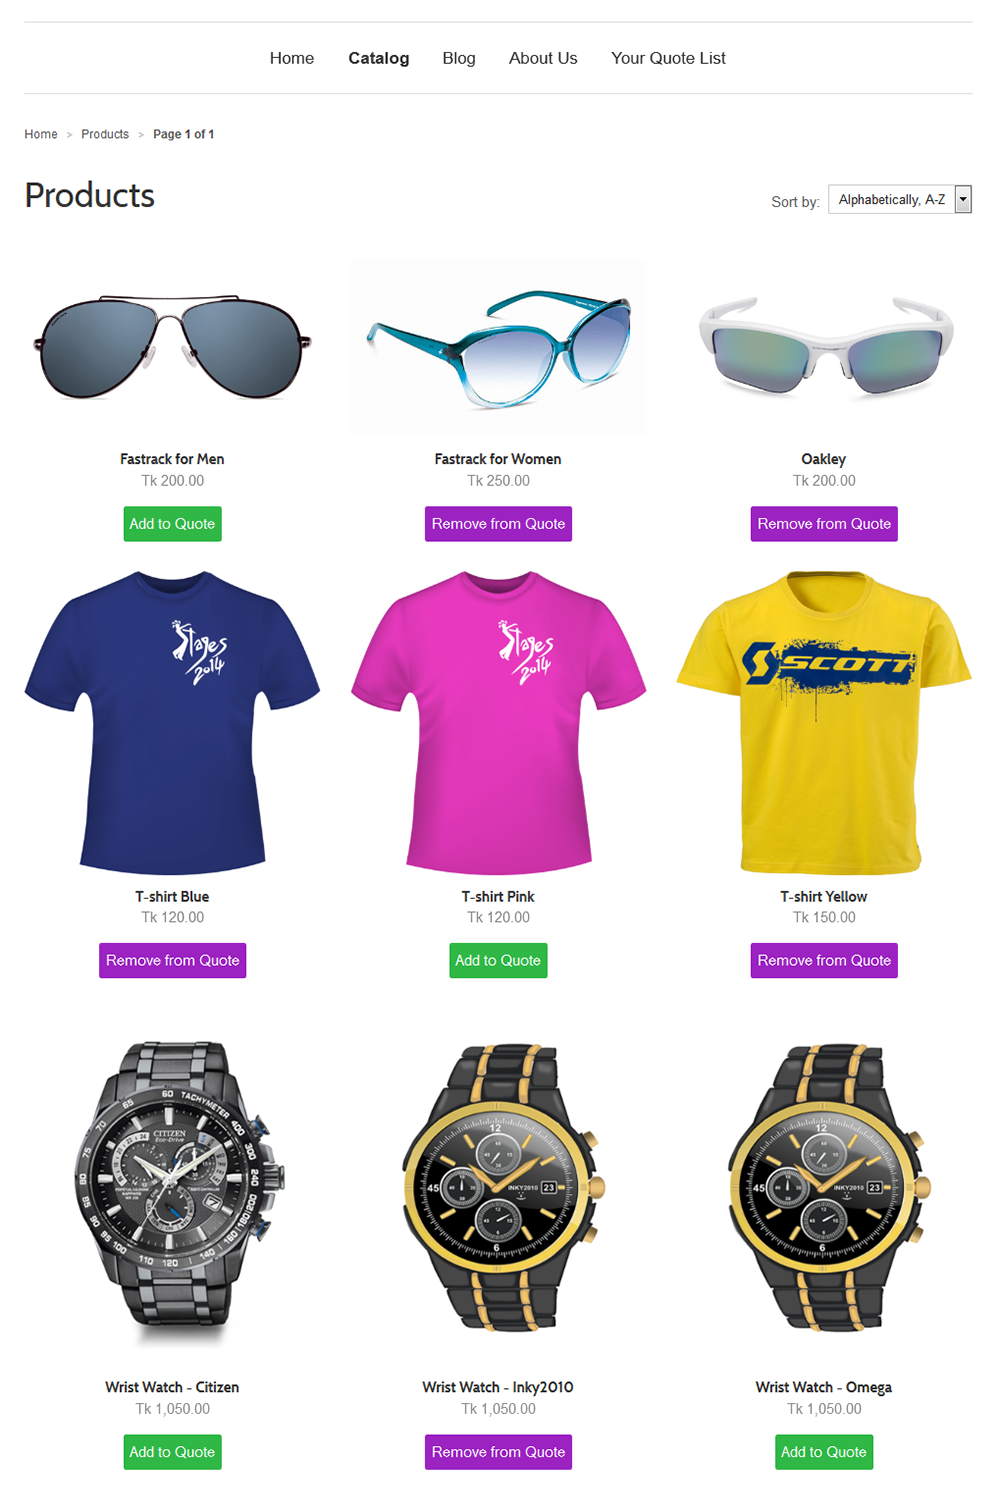 Request For Quote Request A Quote  Ecommerce Plugins For Online Stores  Shopify